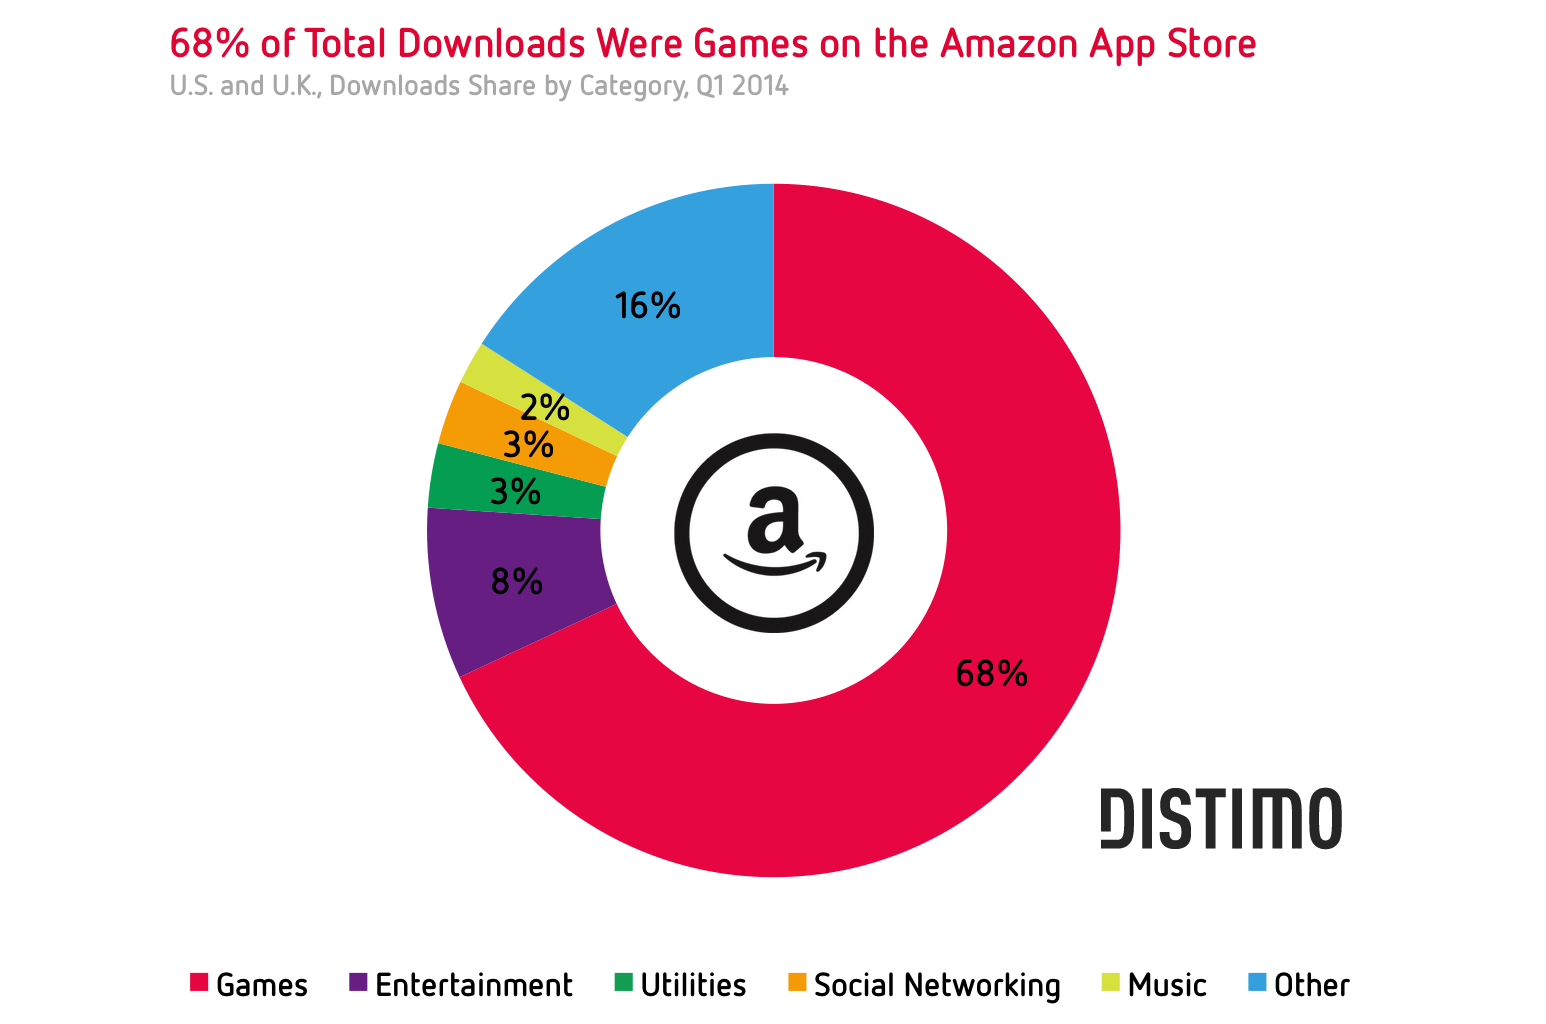 distimo-68-percent-of-total-global-downloads-were-games-on-the-amazon-app-store-v3